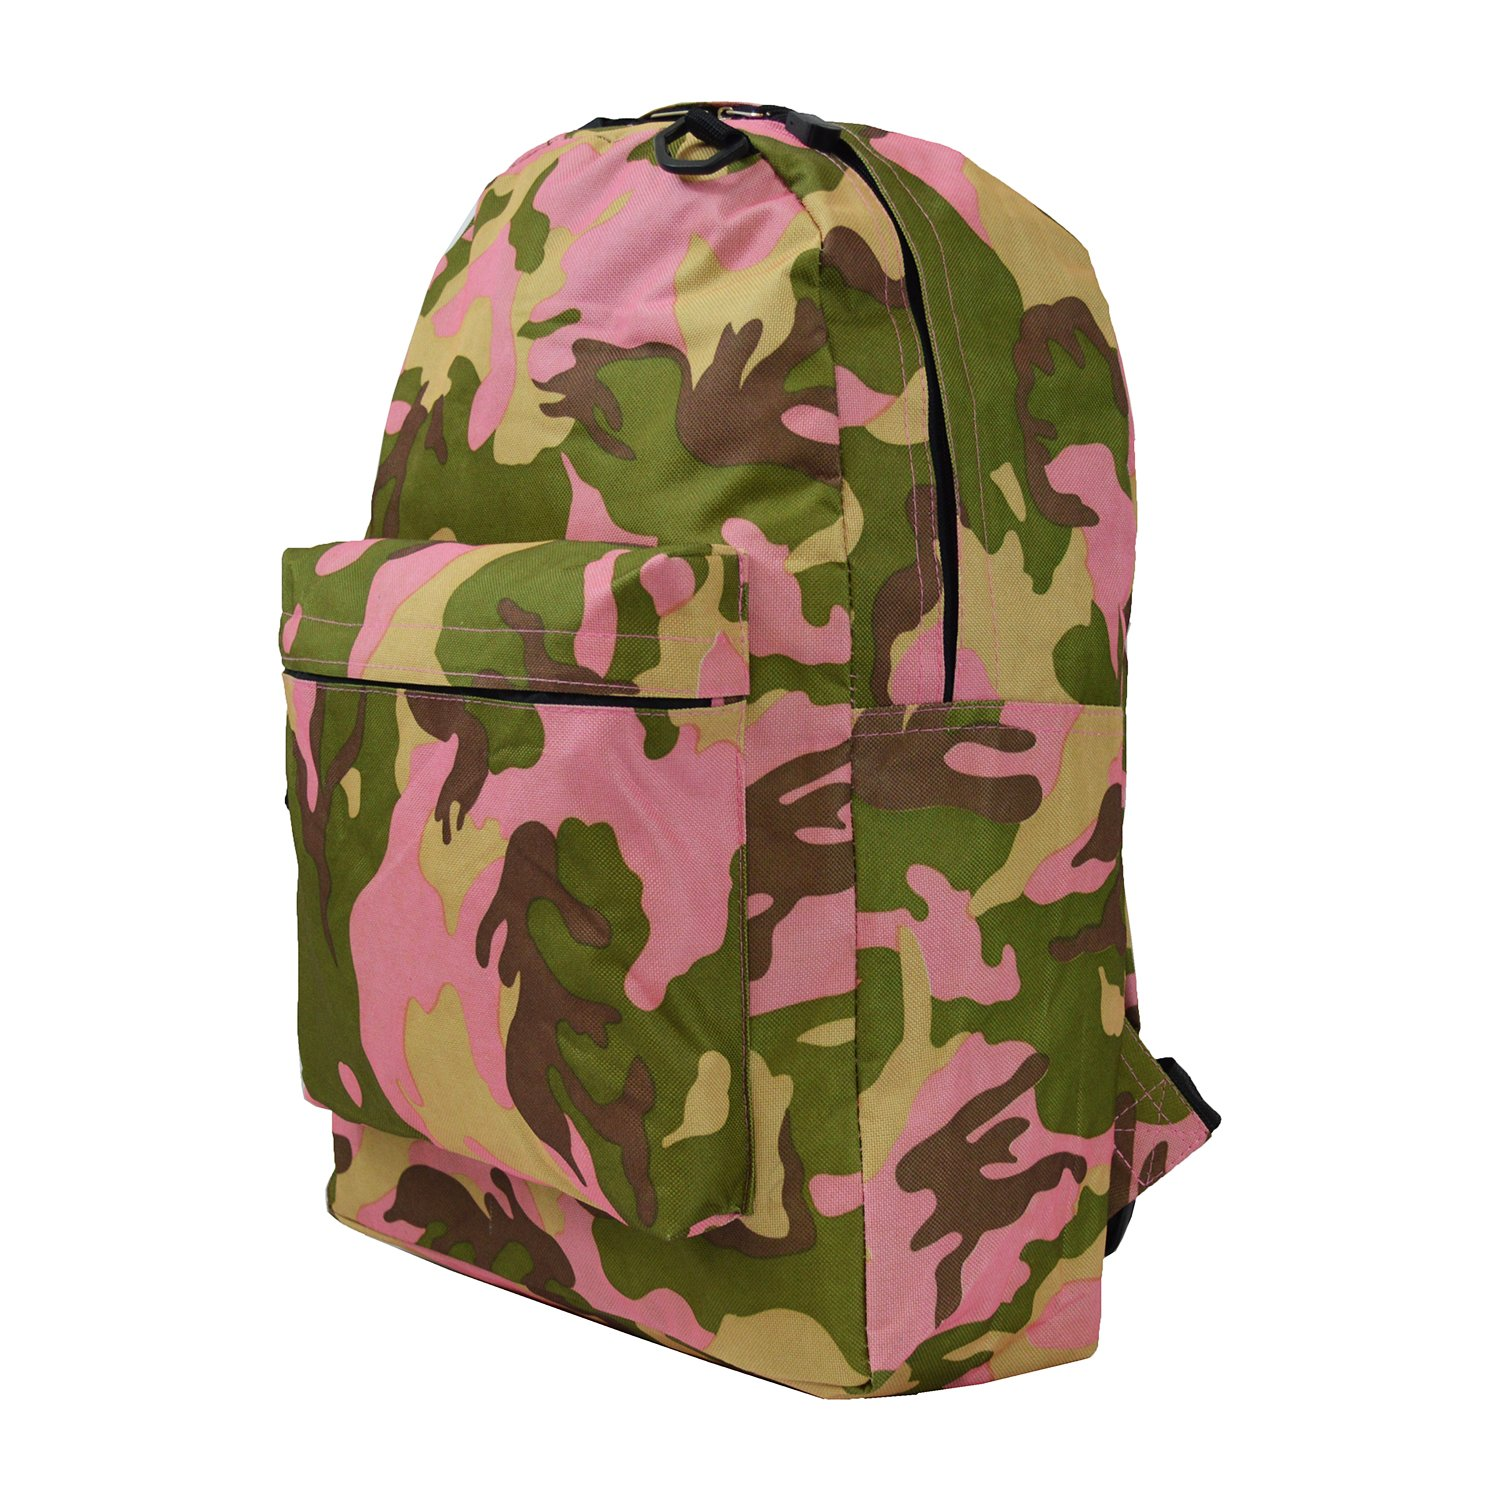 Explorer Military TacticalバックパックLarge 3 Day Assault Pack Army MOLLEバグアウトバッグバックパックHuntingリュックサックEvery Day Use B077YZRVMF PinkCamo-B2